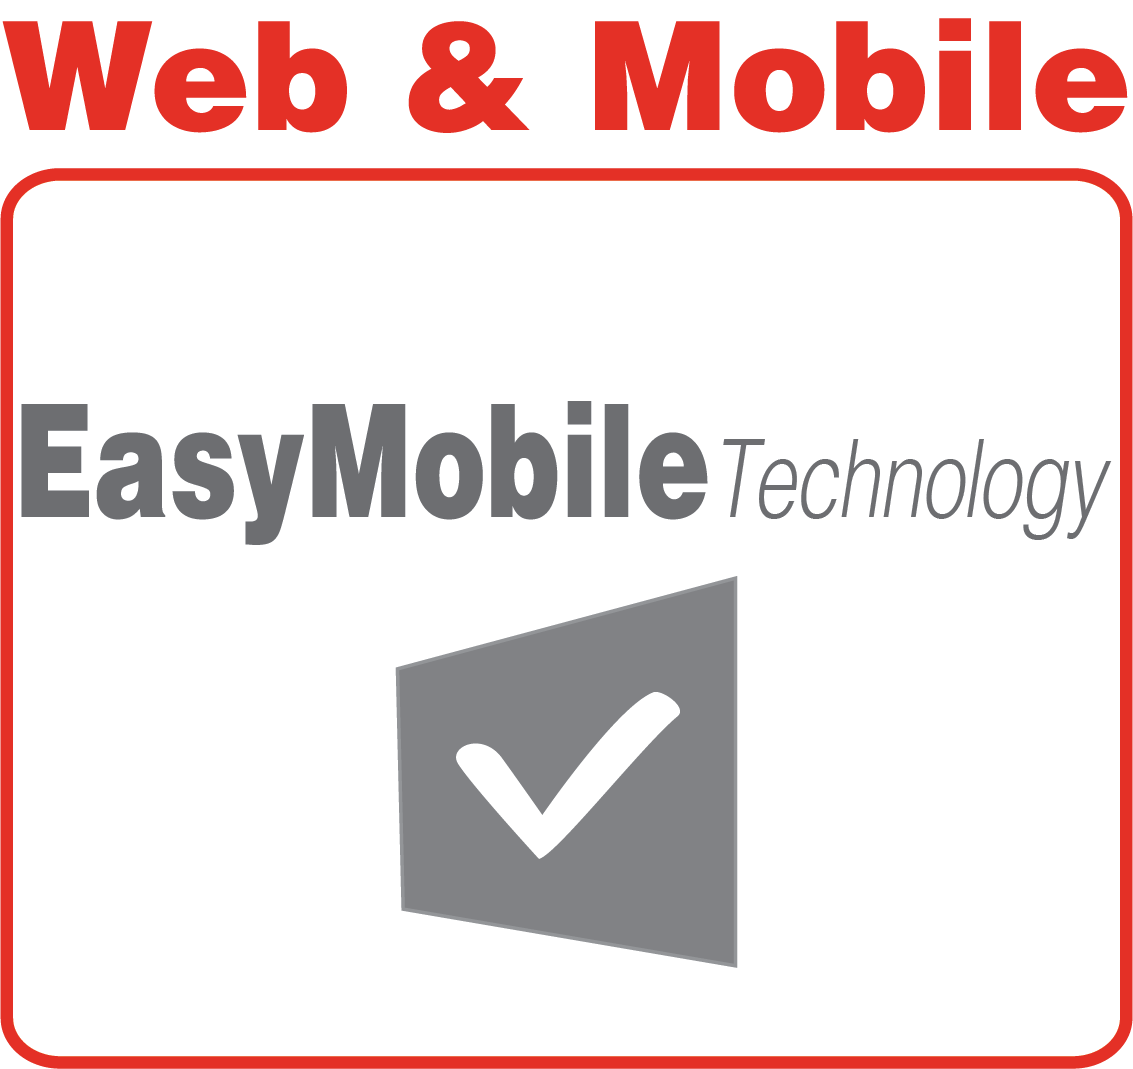 Web Mobile EasyMobile icon technology